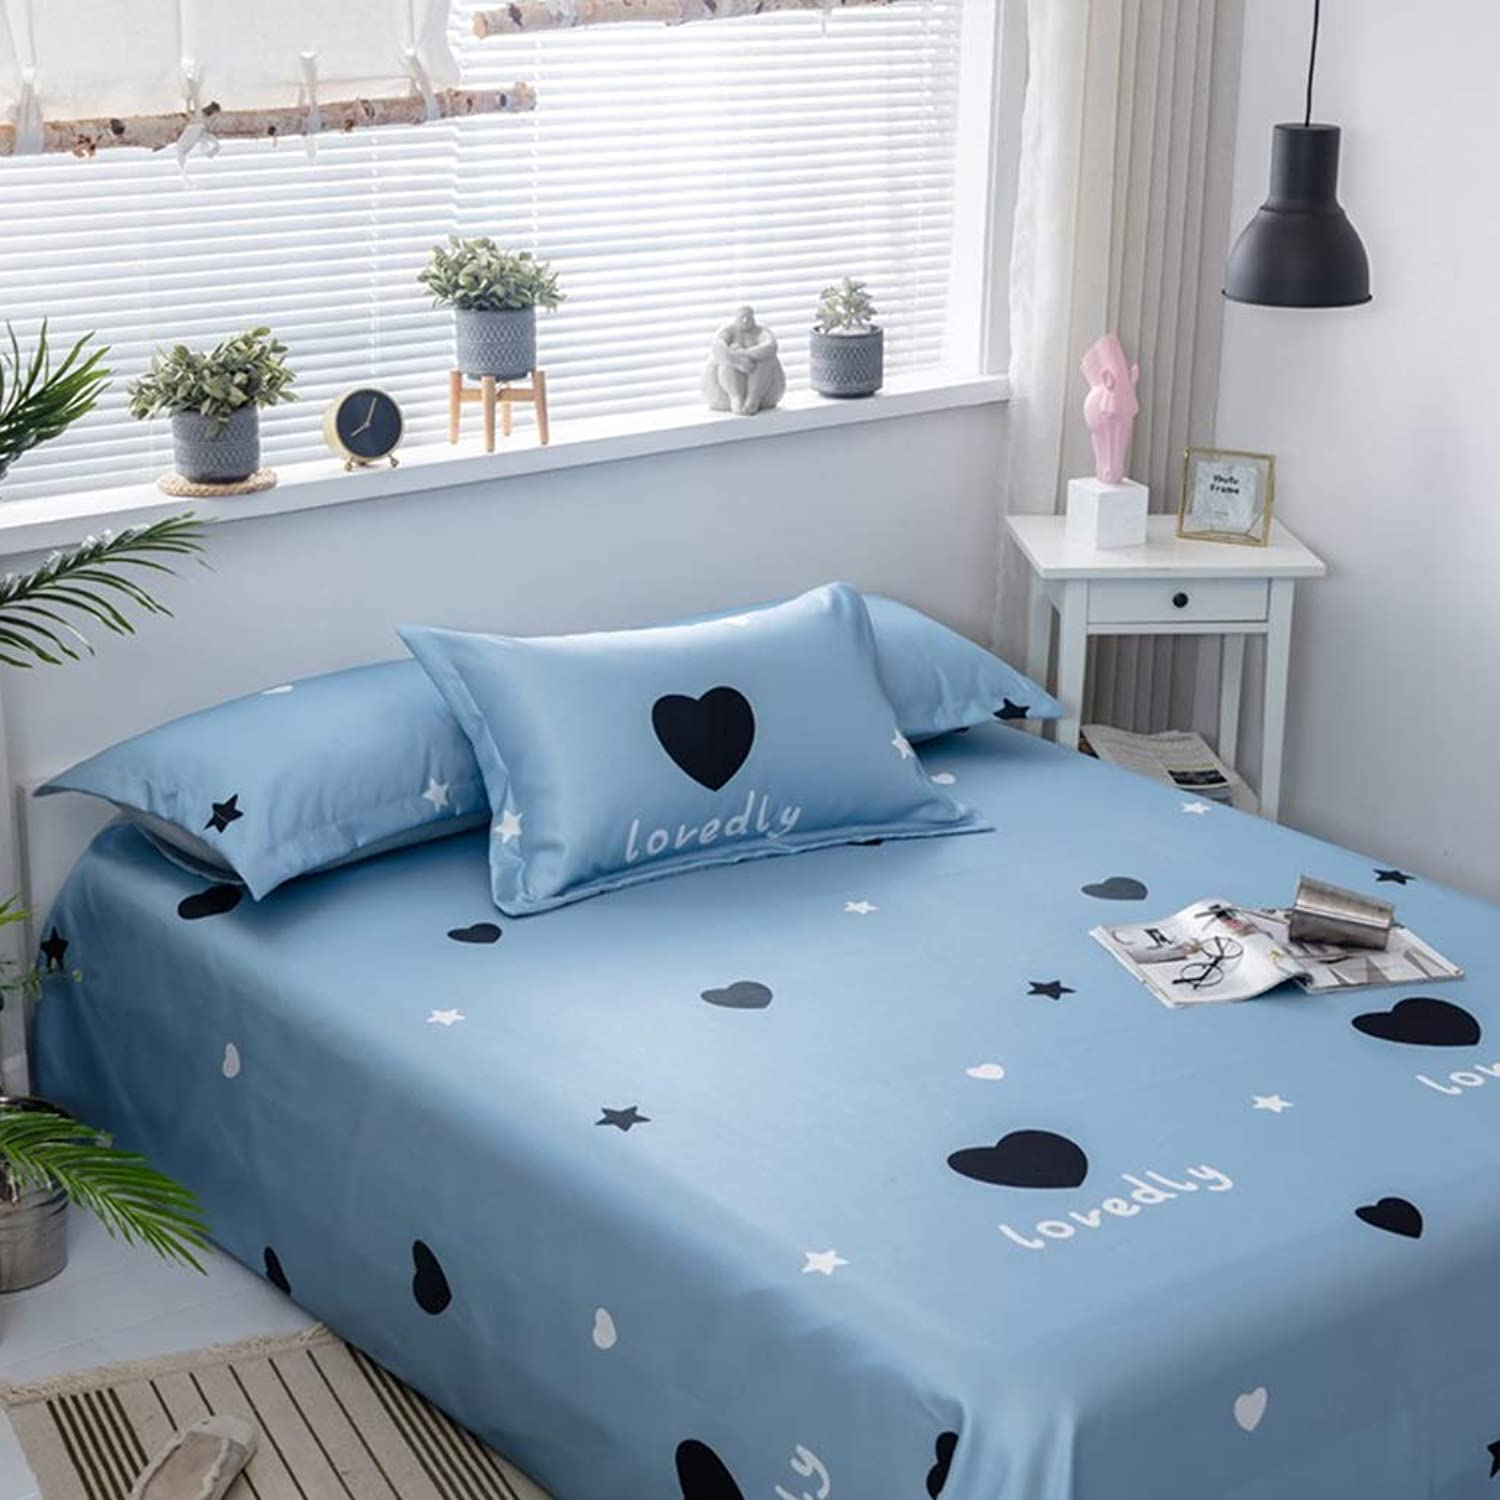 Collapsible Ice Silk Mat Double Air-Conditioned Mat Refreshing Three-Piece 1.8 1.5 2 M Ice Silk Soft Mat(with Pillowcase) (color   bluee1, Size   Suitable for 2m Bed)